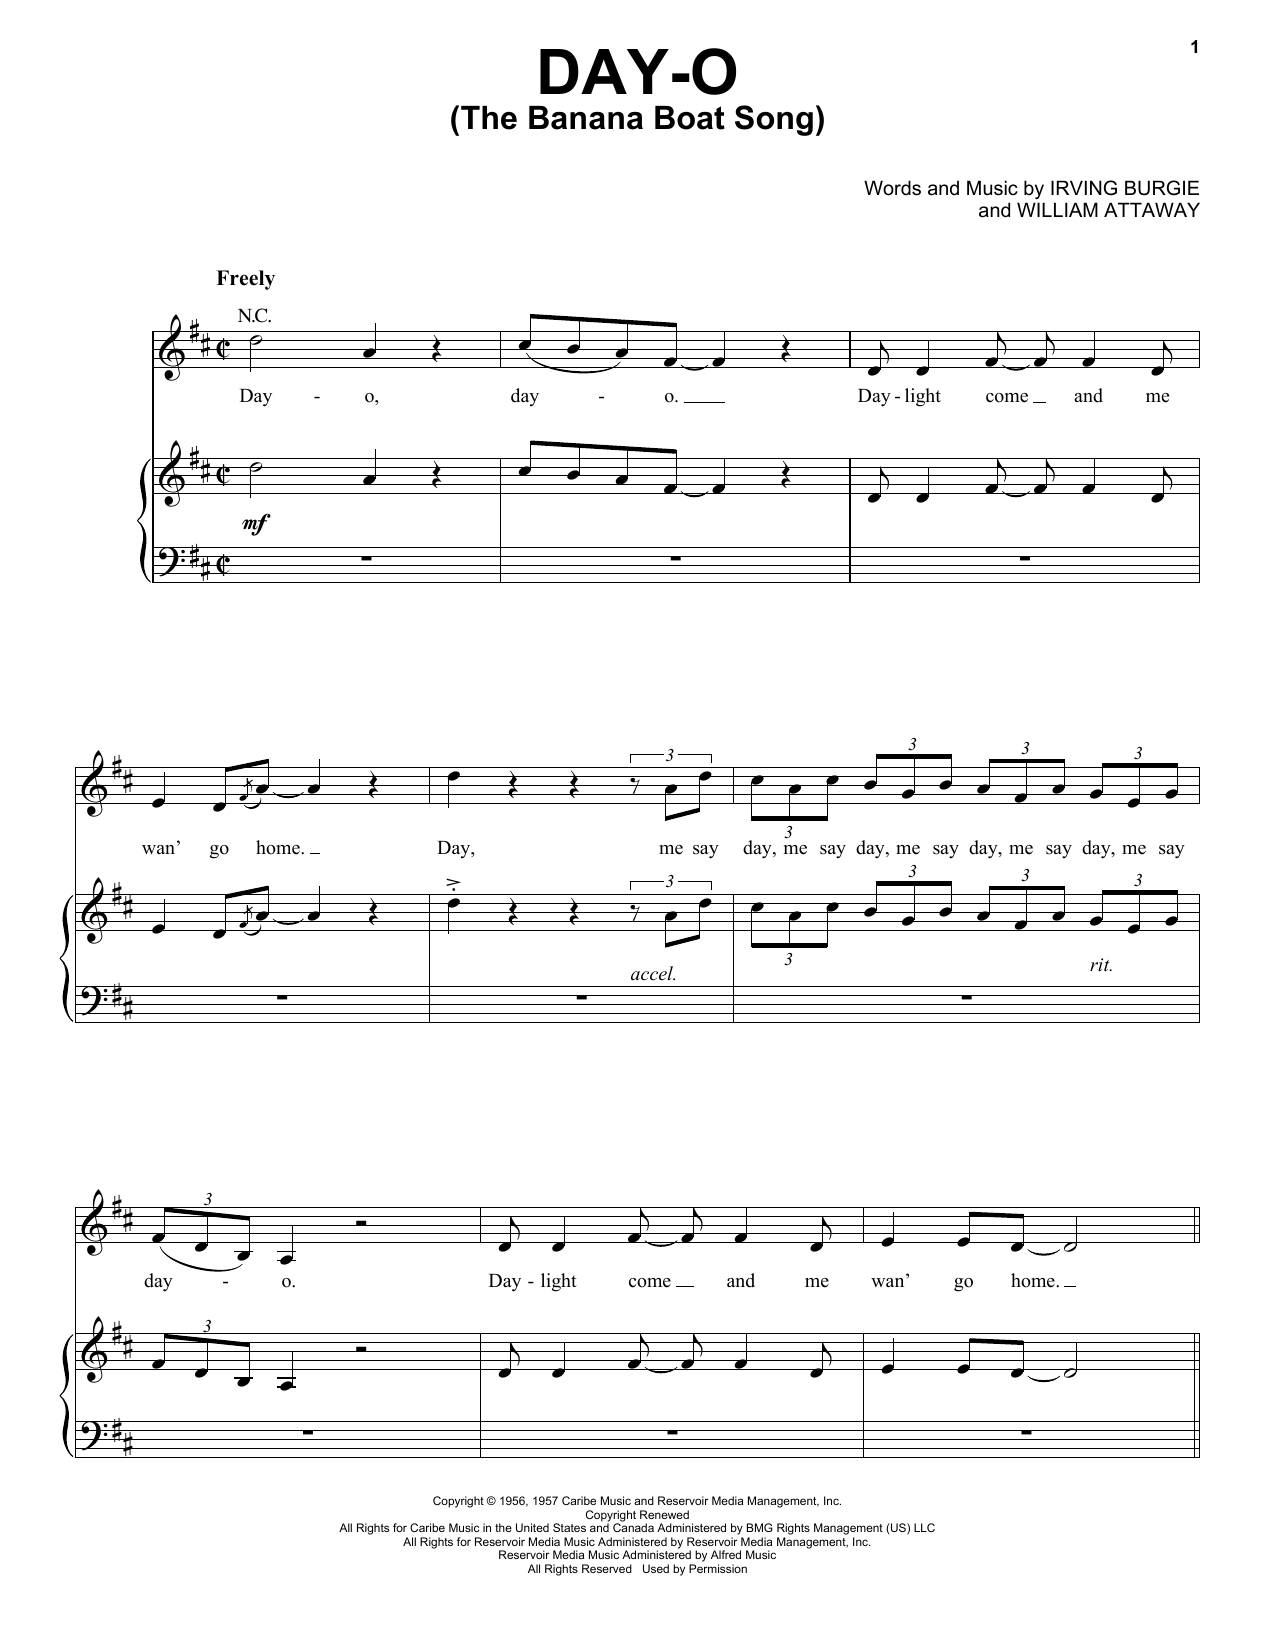 Day-O (The Banana Boat Song) sheet music for voice, piano or guitar by William Attaway